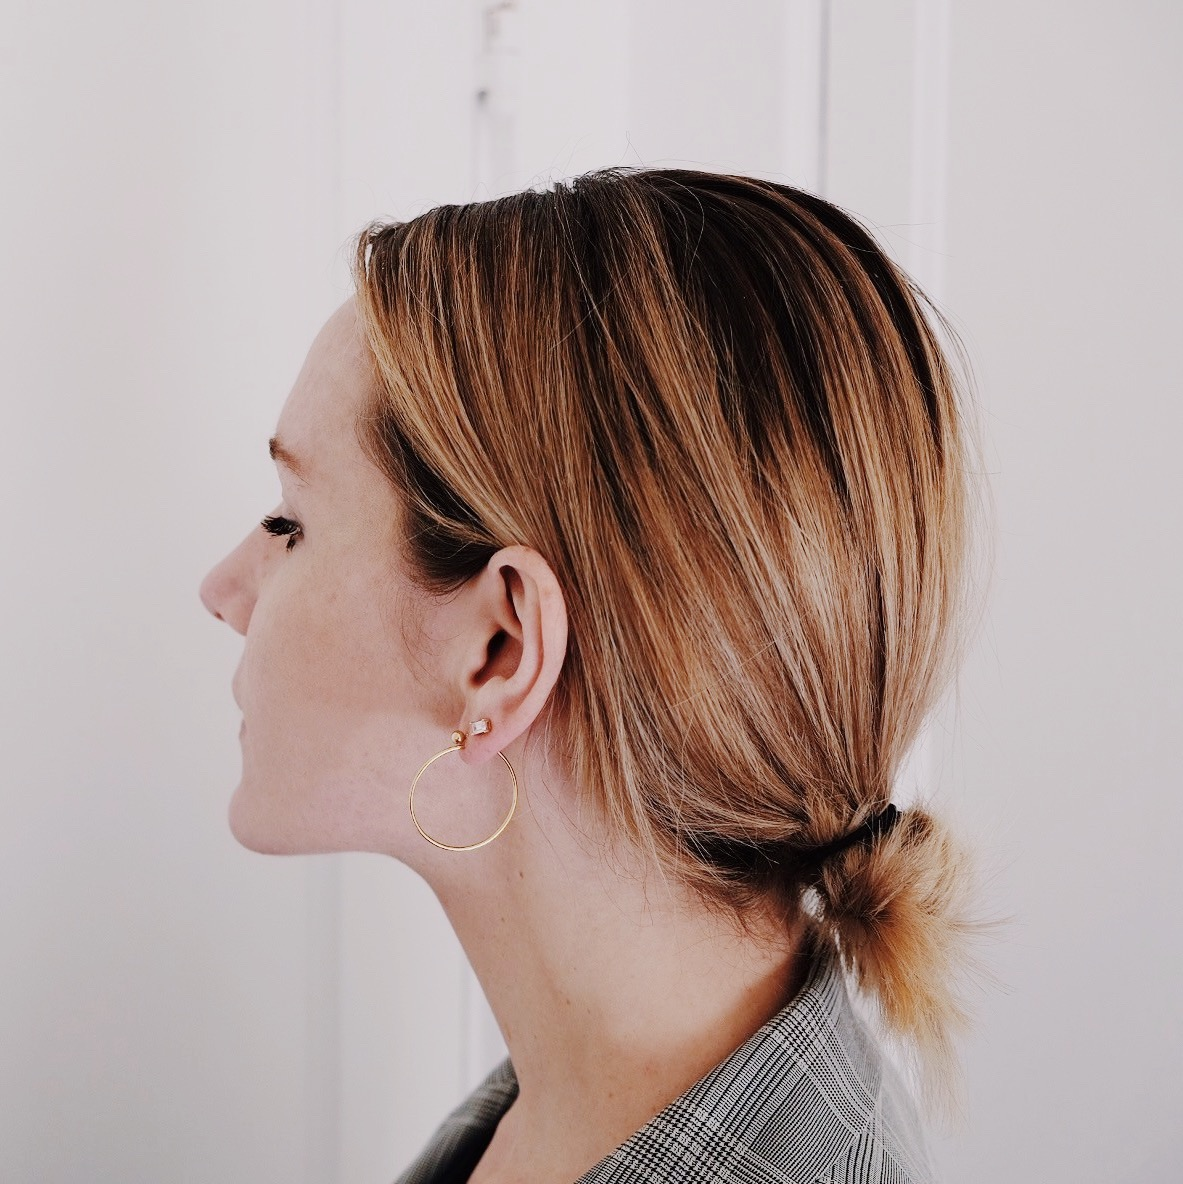 Ethical Minimal Versatile Earring Capsule Review by Selflessly Styled